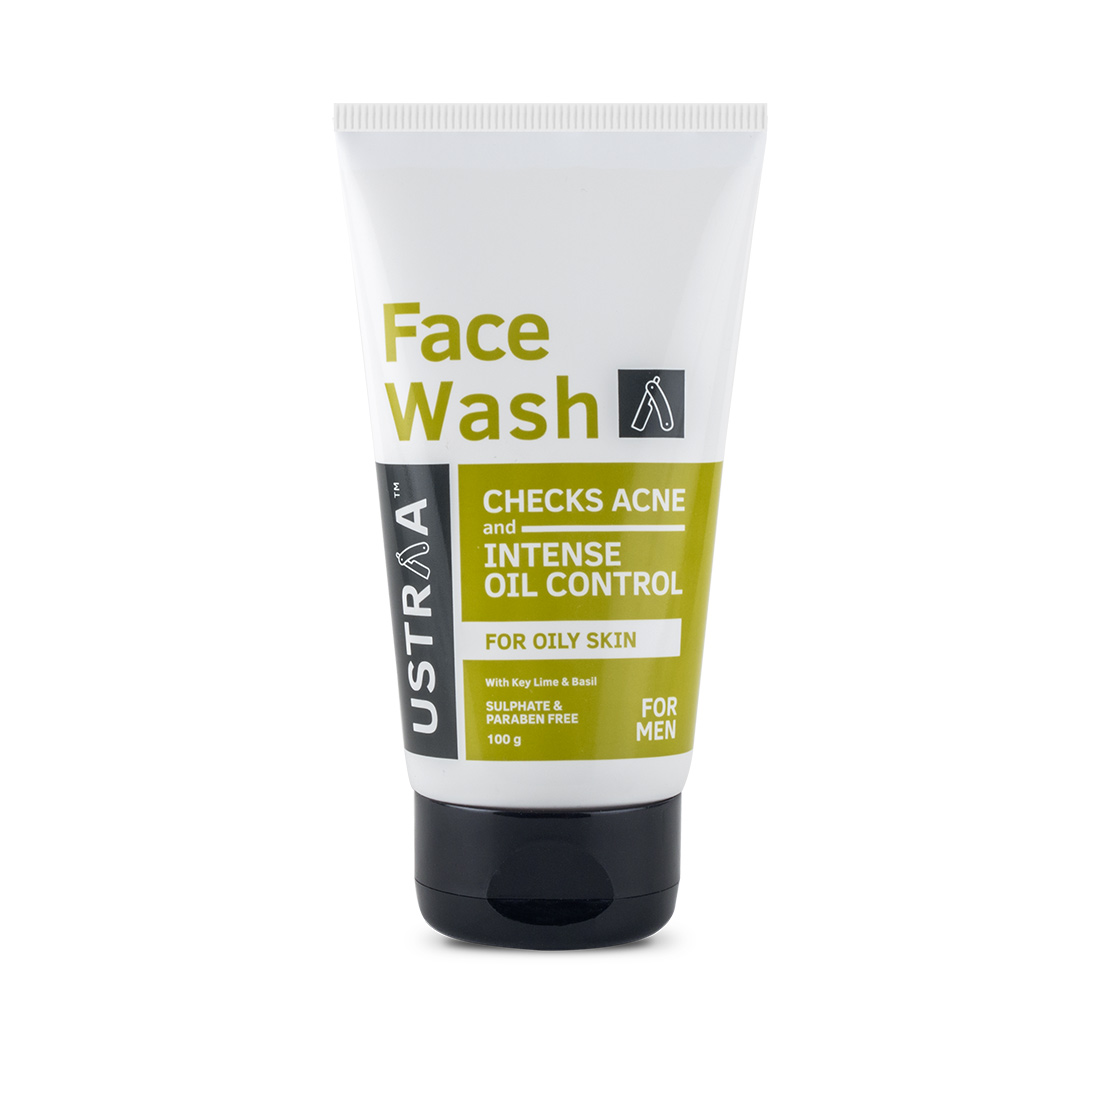 Face Wash - Oily Skin (Checks Acne & Oil Control) - 100g